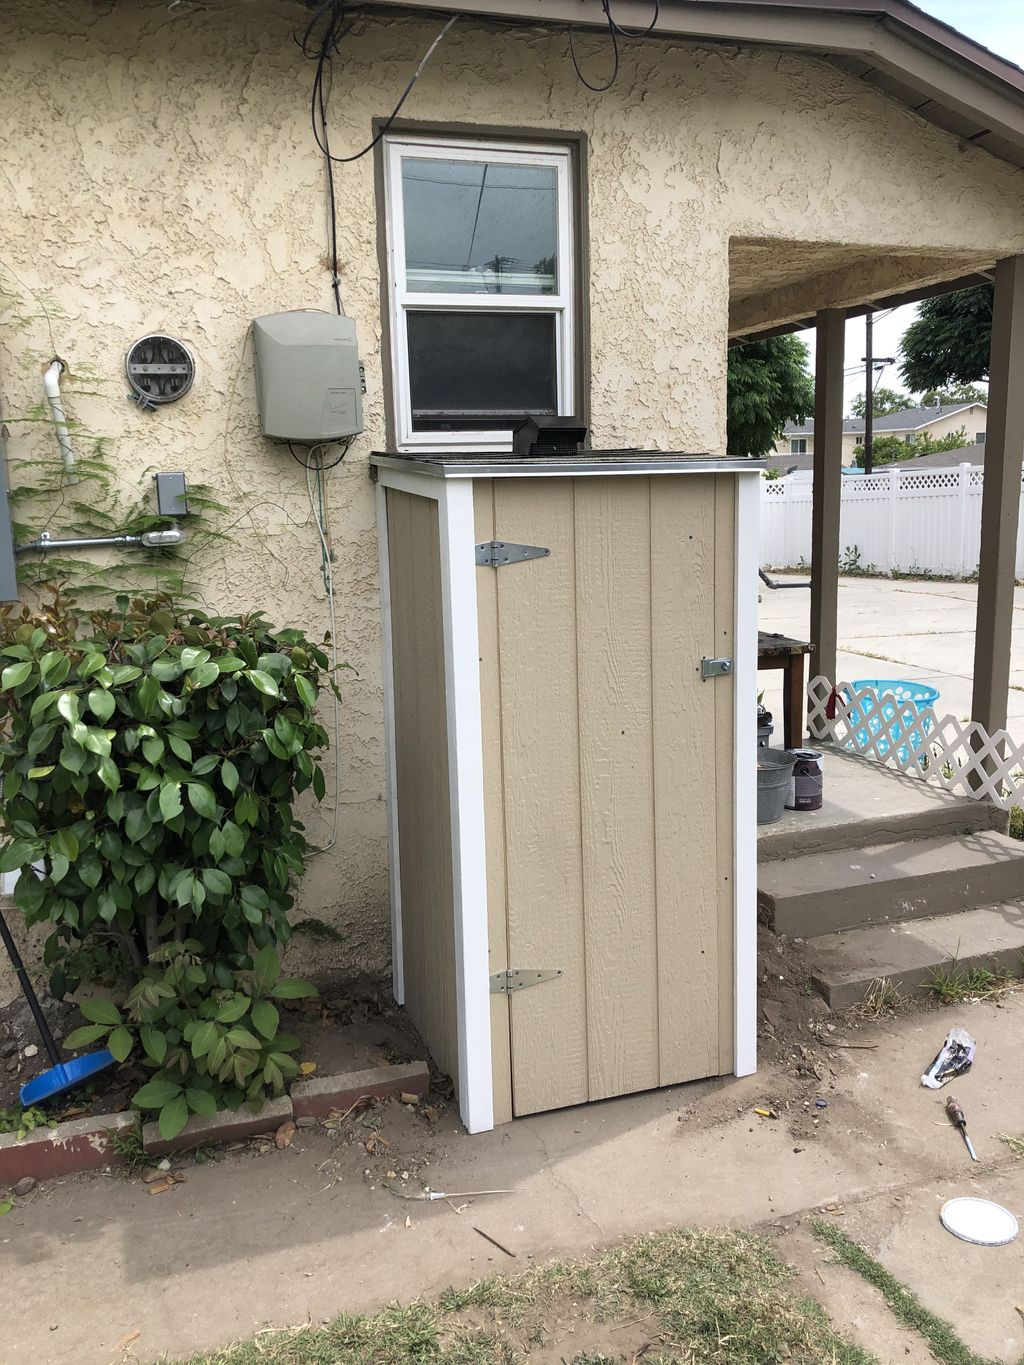 Shed for water heater